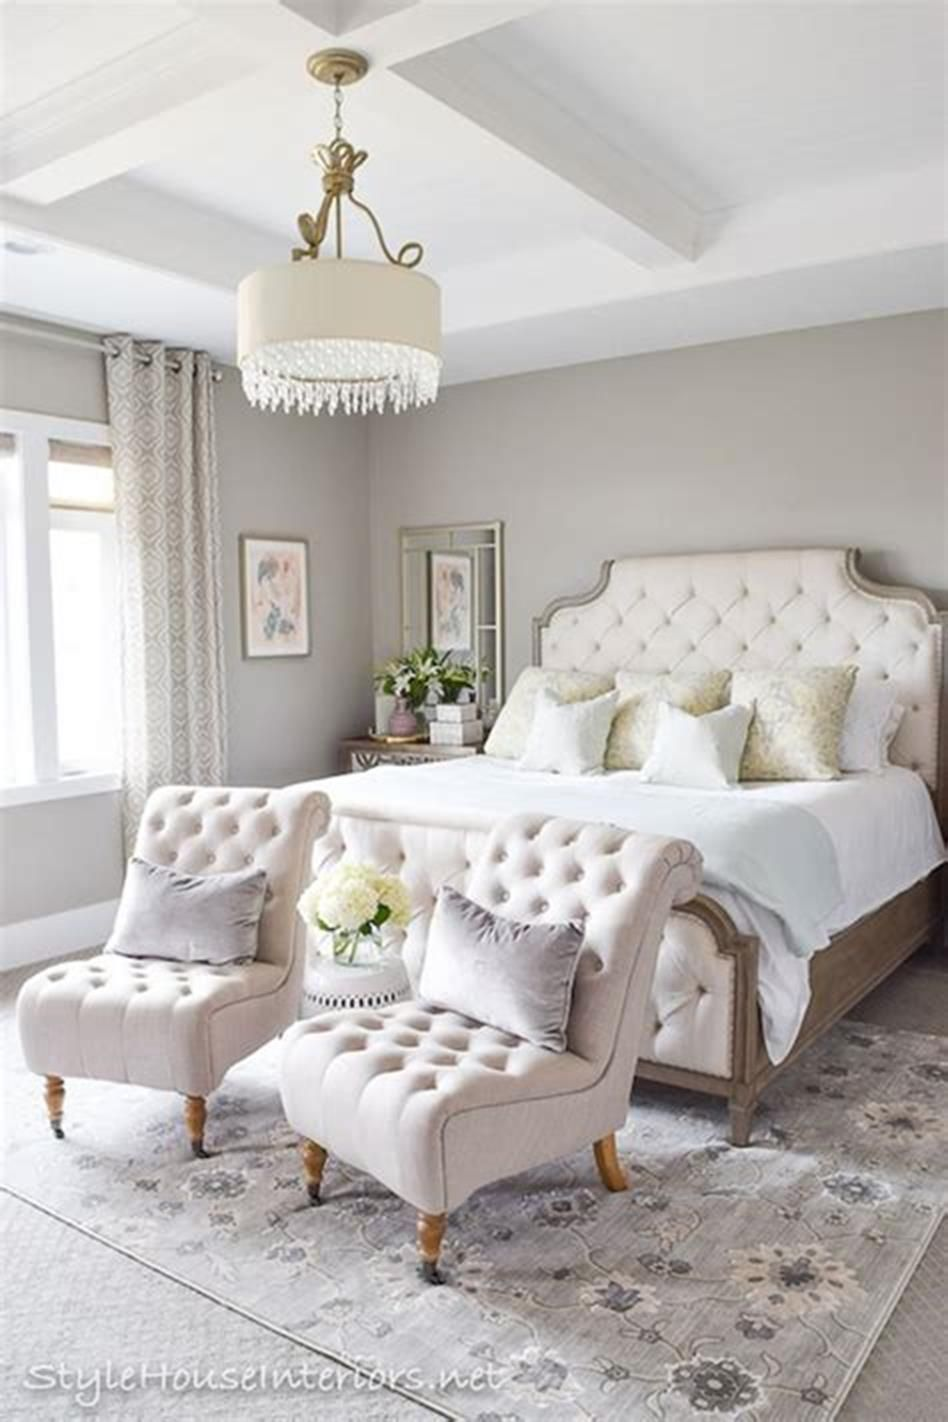 55 amazing small master bedroom decorating design ideas on on modern luxurious bedroom ideas decoration some inspiration to advise you in decorating your room id=42421